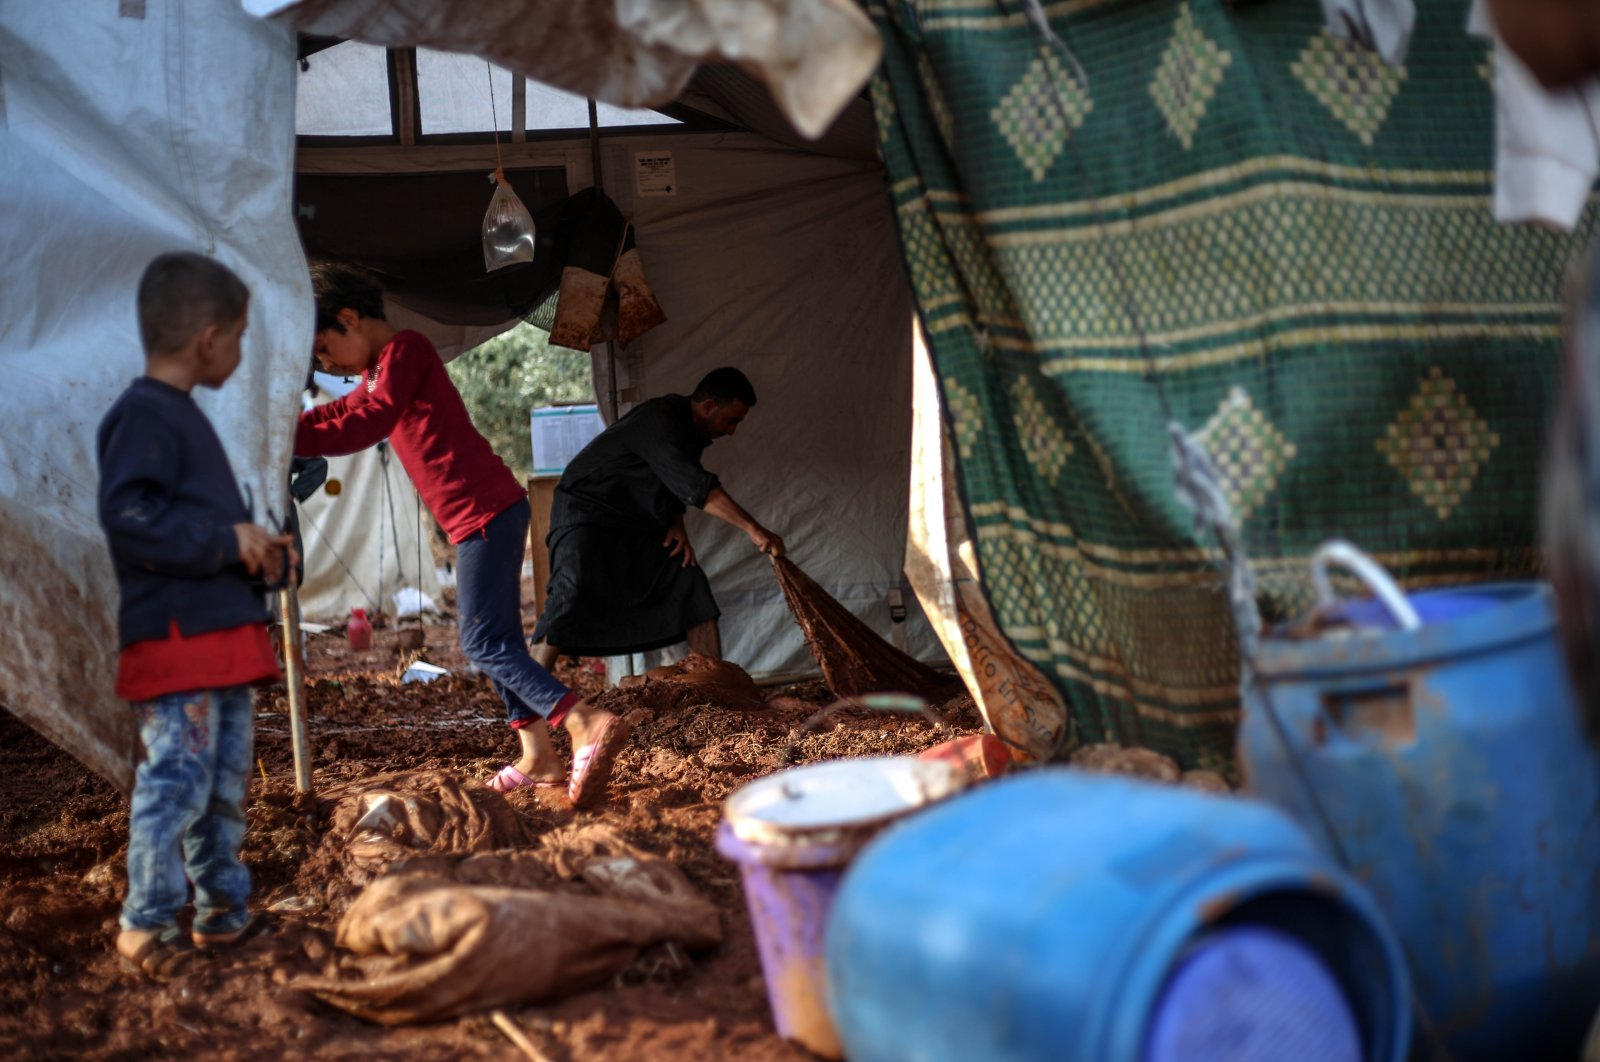 A displaced Syrian family is seen clearing mud from their tent after heavy rains caused devastating damage in camps in northwestern Syria, June 19, 2020. (AA Photo)